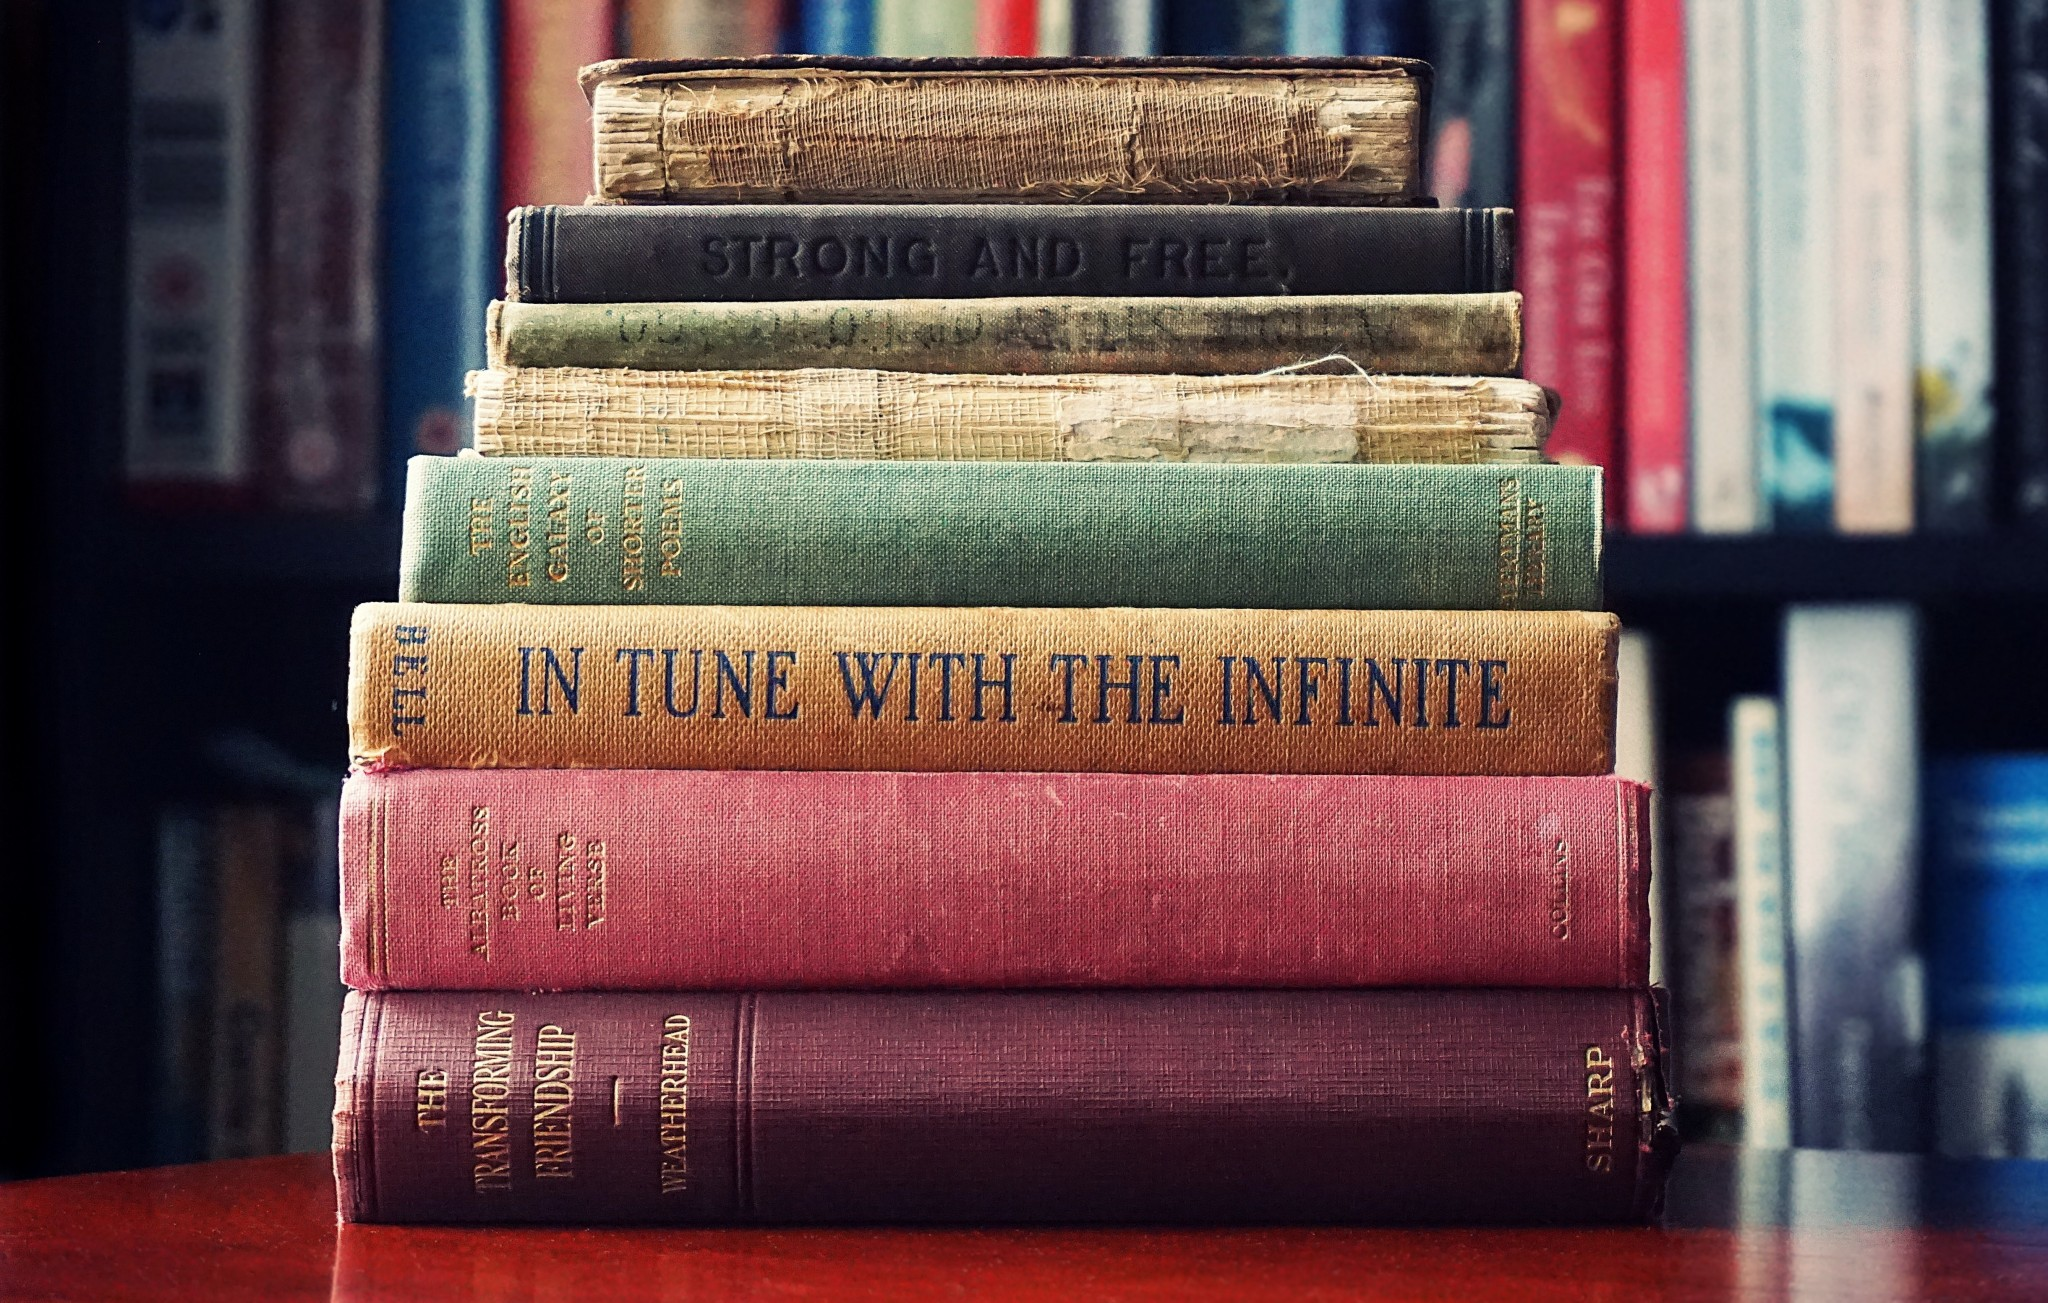 pile-of-assorted-title-book-lot-selective-focus-photographt-1130980